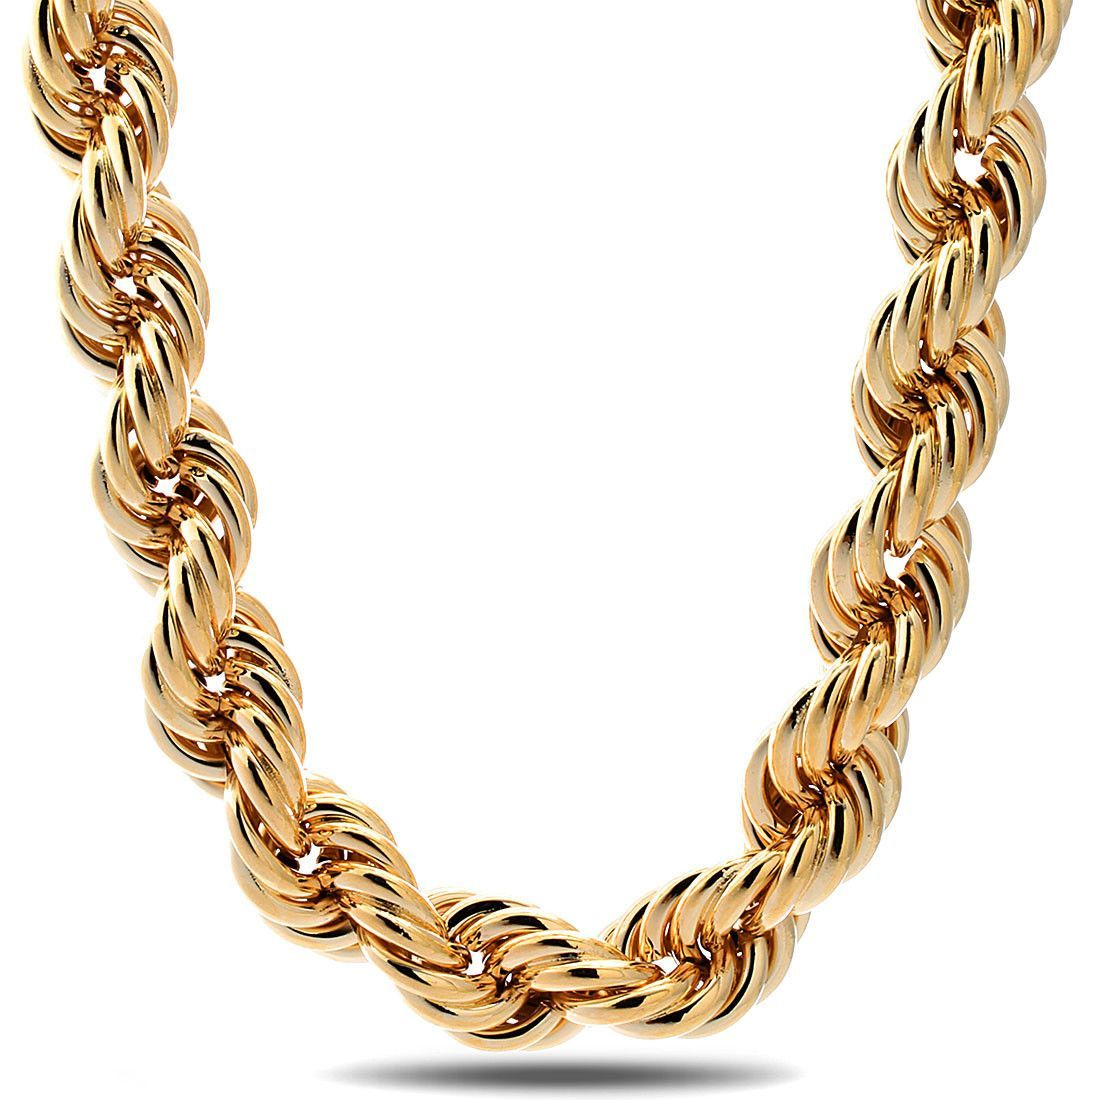 K gold dookie rope chain pinterest hip hop chains and gold